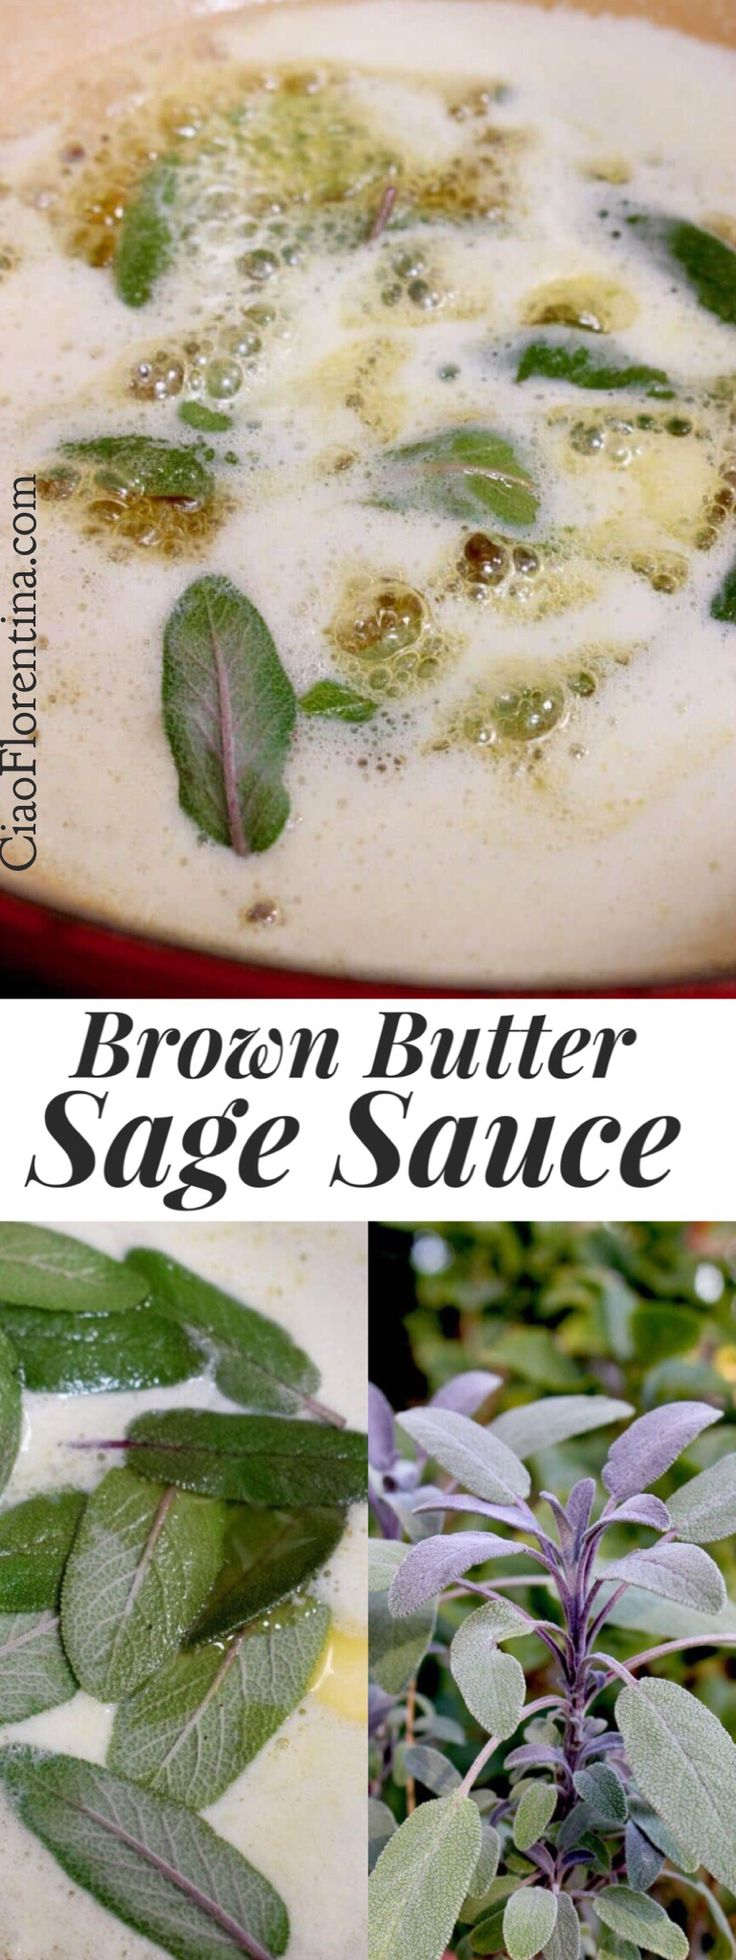 """Brown Butter Sage Sauce Recipe or """" burro bruno e salvia """" perfect to toss with Butternut Squash or mushroom ravioli, fluffy gnocchi and sprinkled with toasted bread crumbs or pine nuts   CiaoFlorentina.com @CiaoFlorentina"""